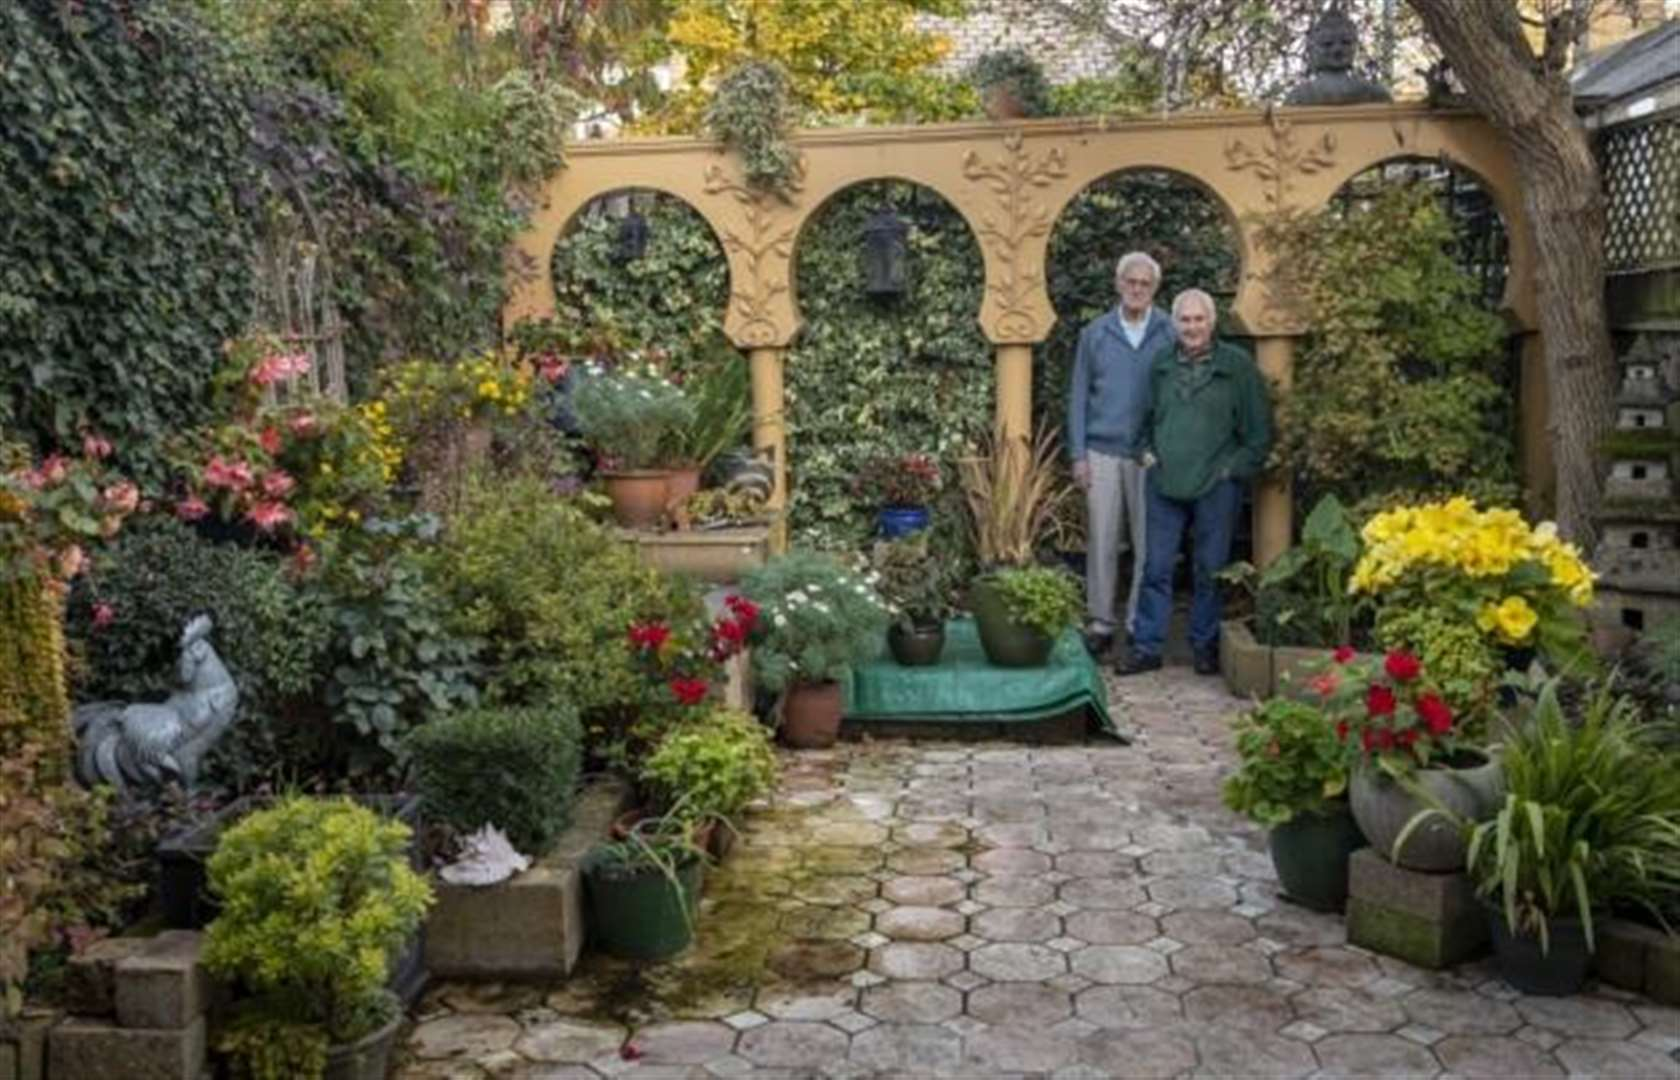 Cambridge garden nominated for BBC magazine award